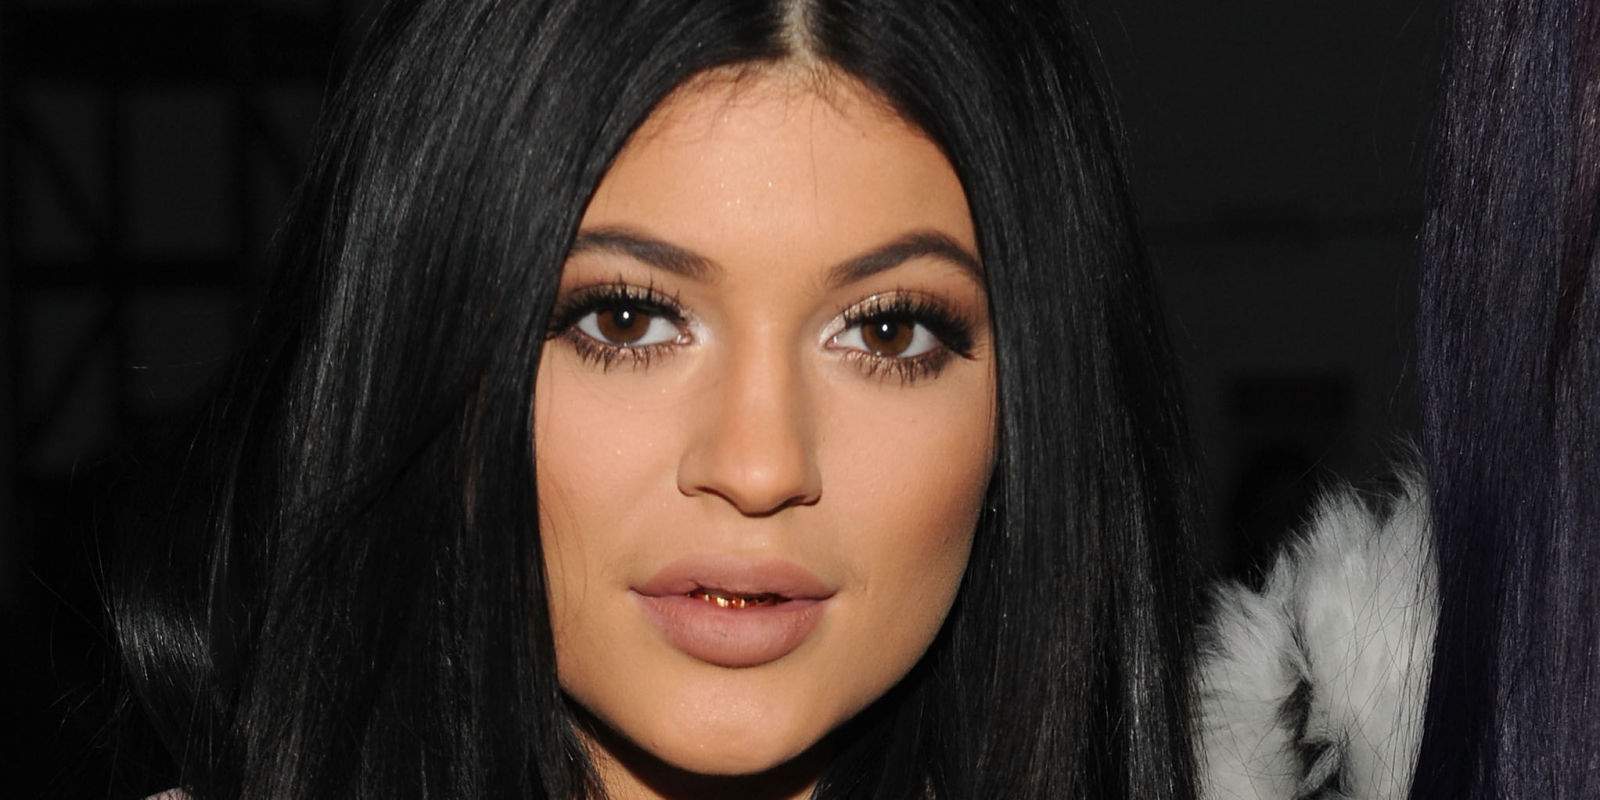 Kylie Jenner Wears Grills To New York Fashion Week - Kylie Jenner ...